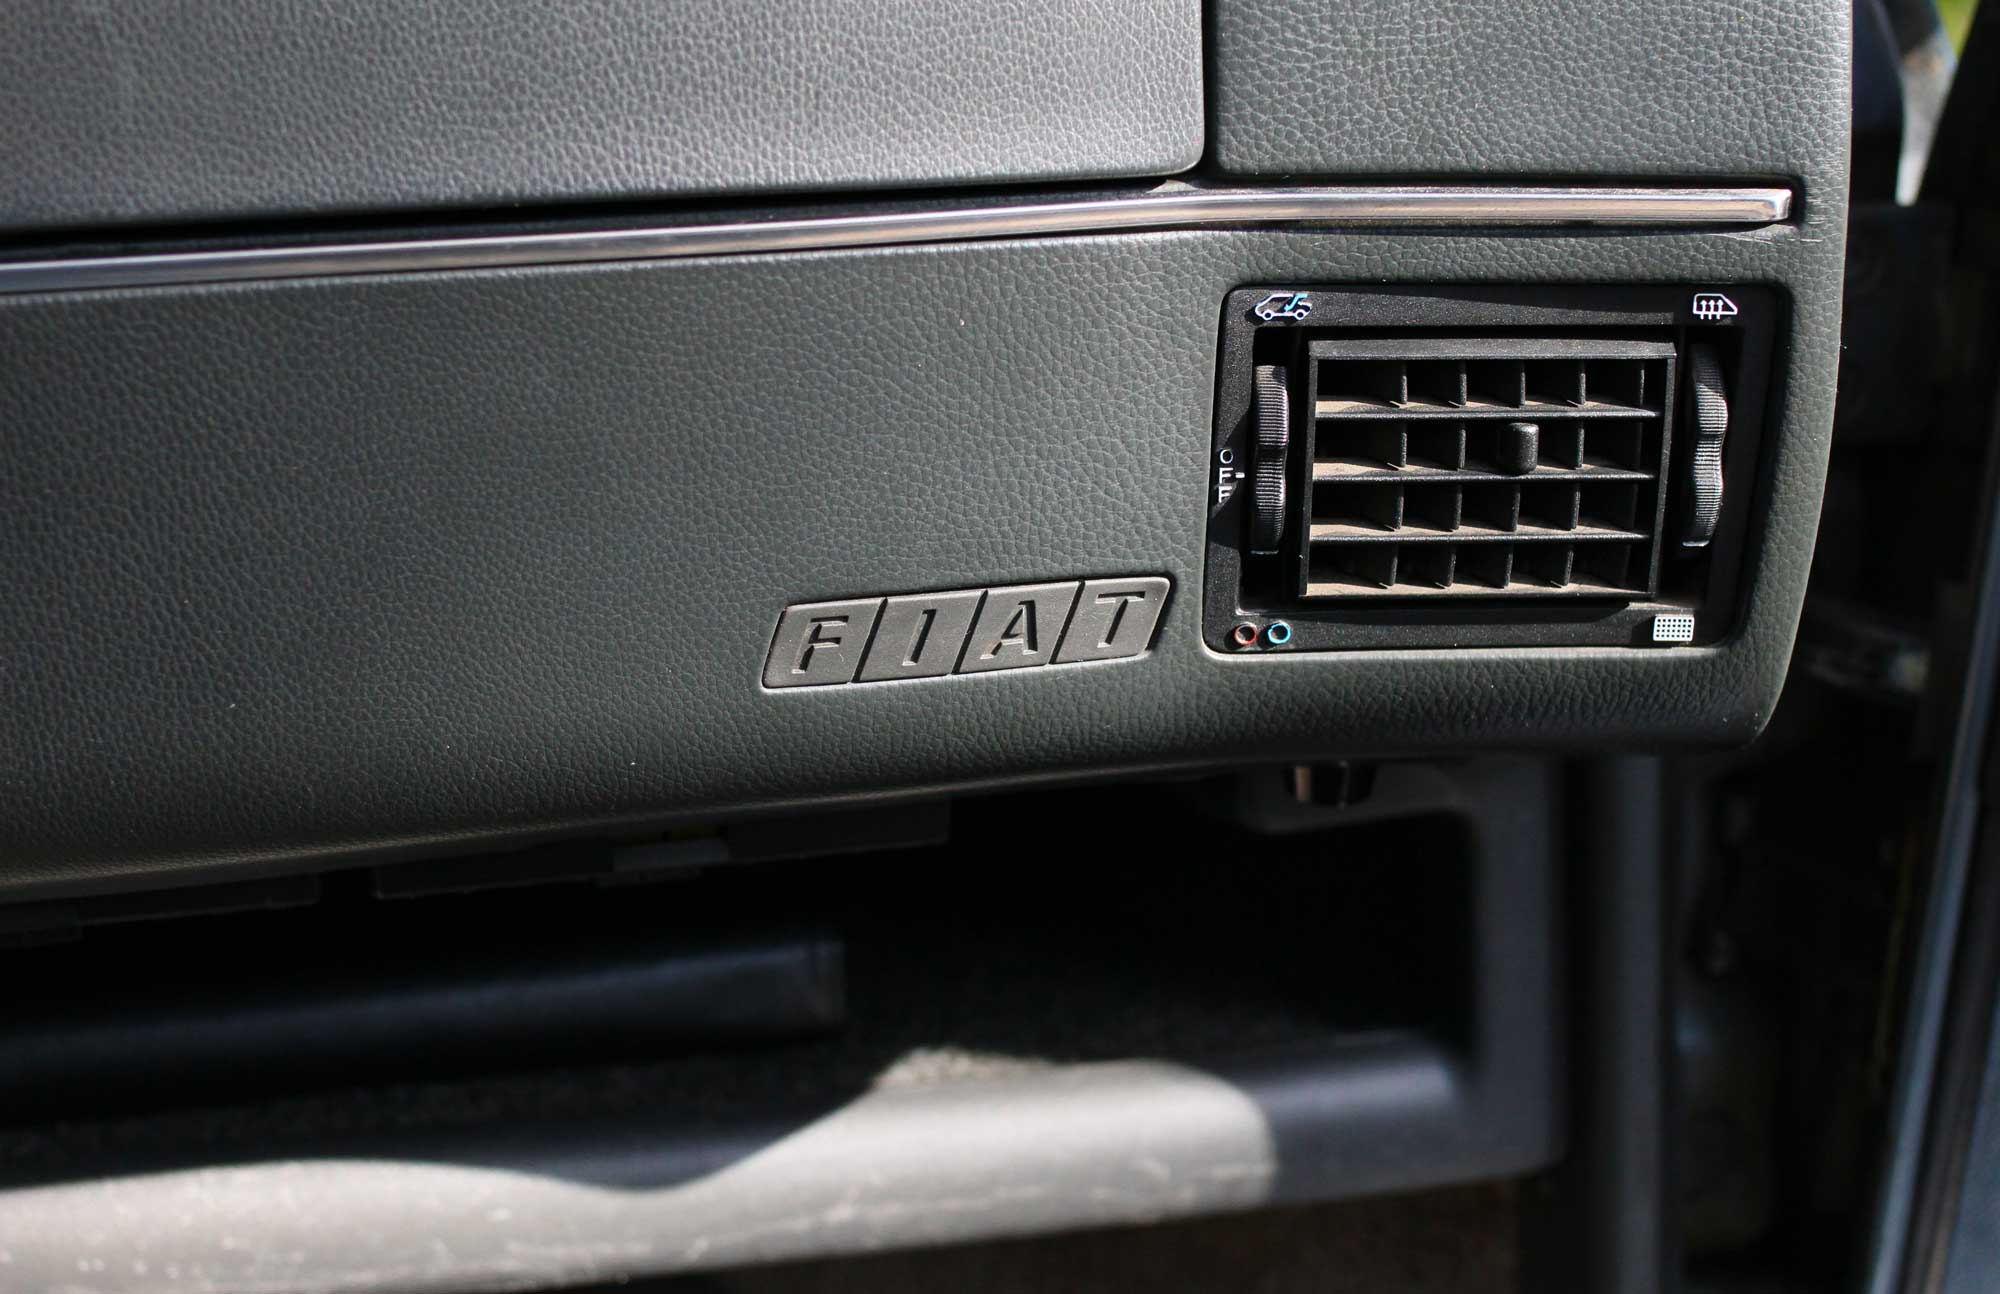 fiat brand inside the car